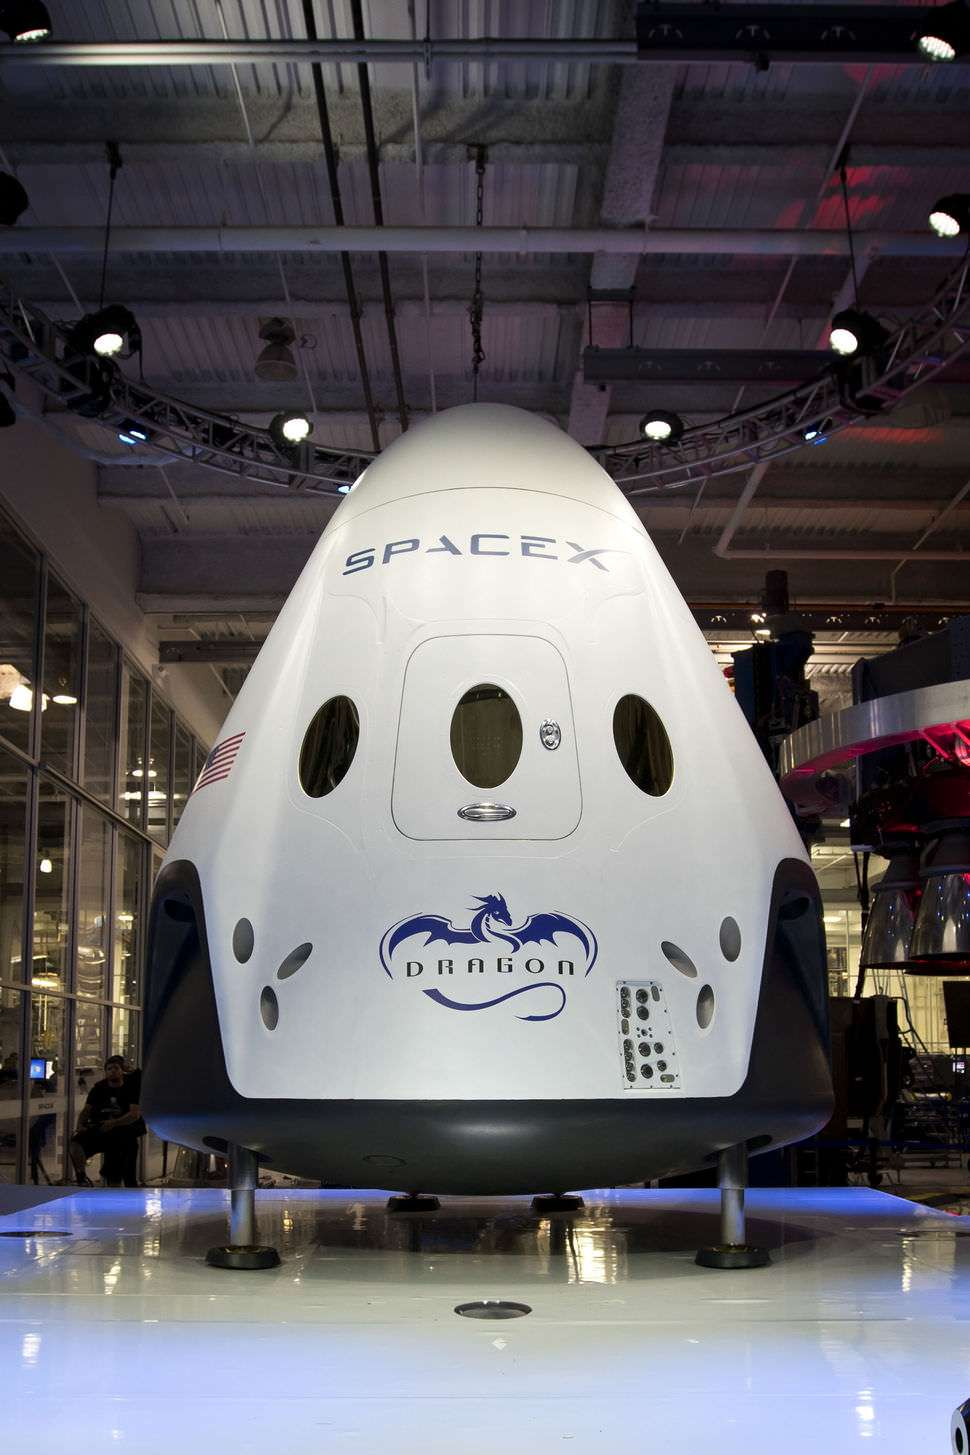 Americans Realize Their Own Members of Congress Suck, SpaceX to